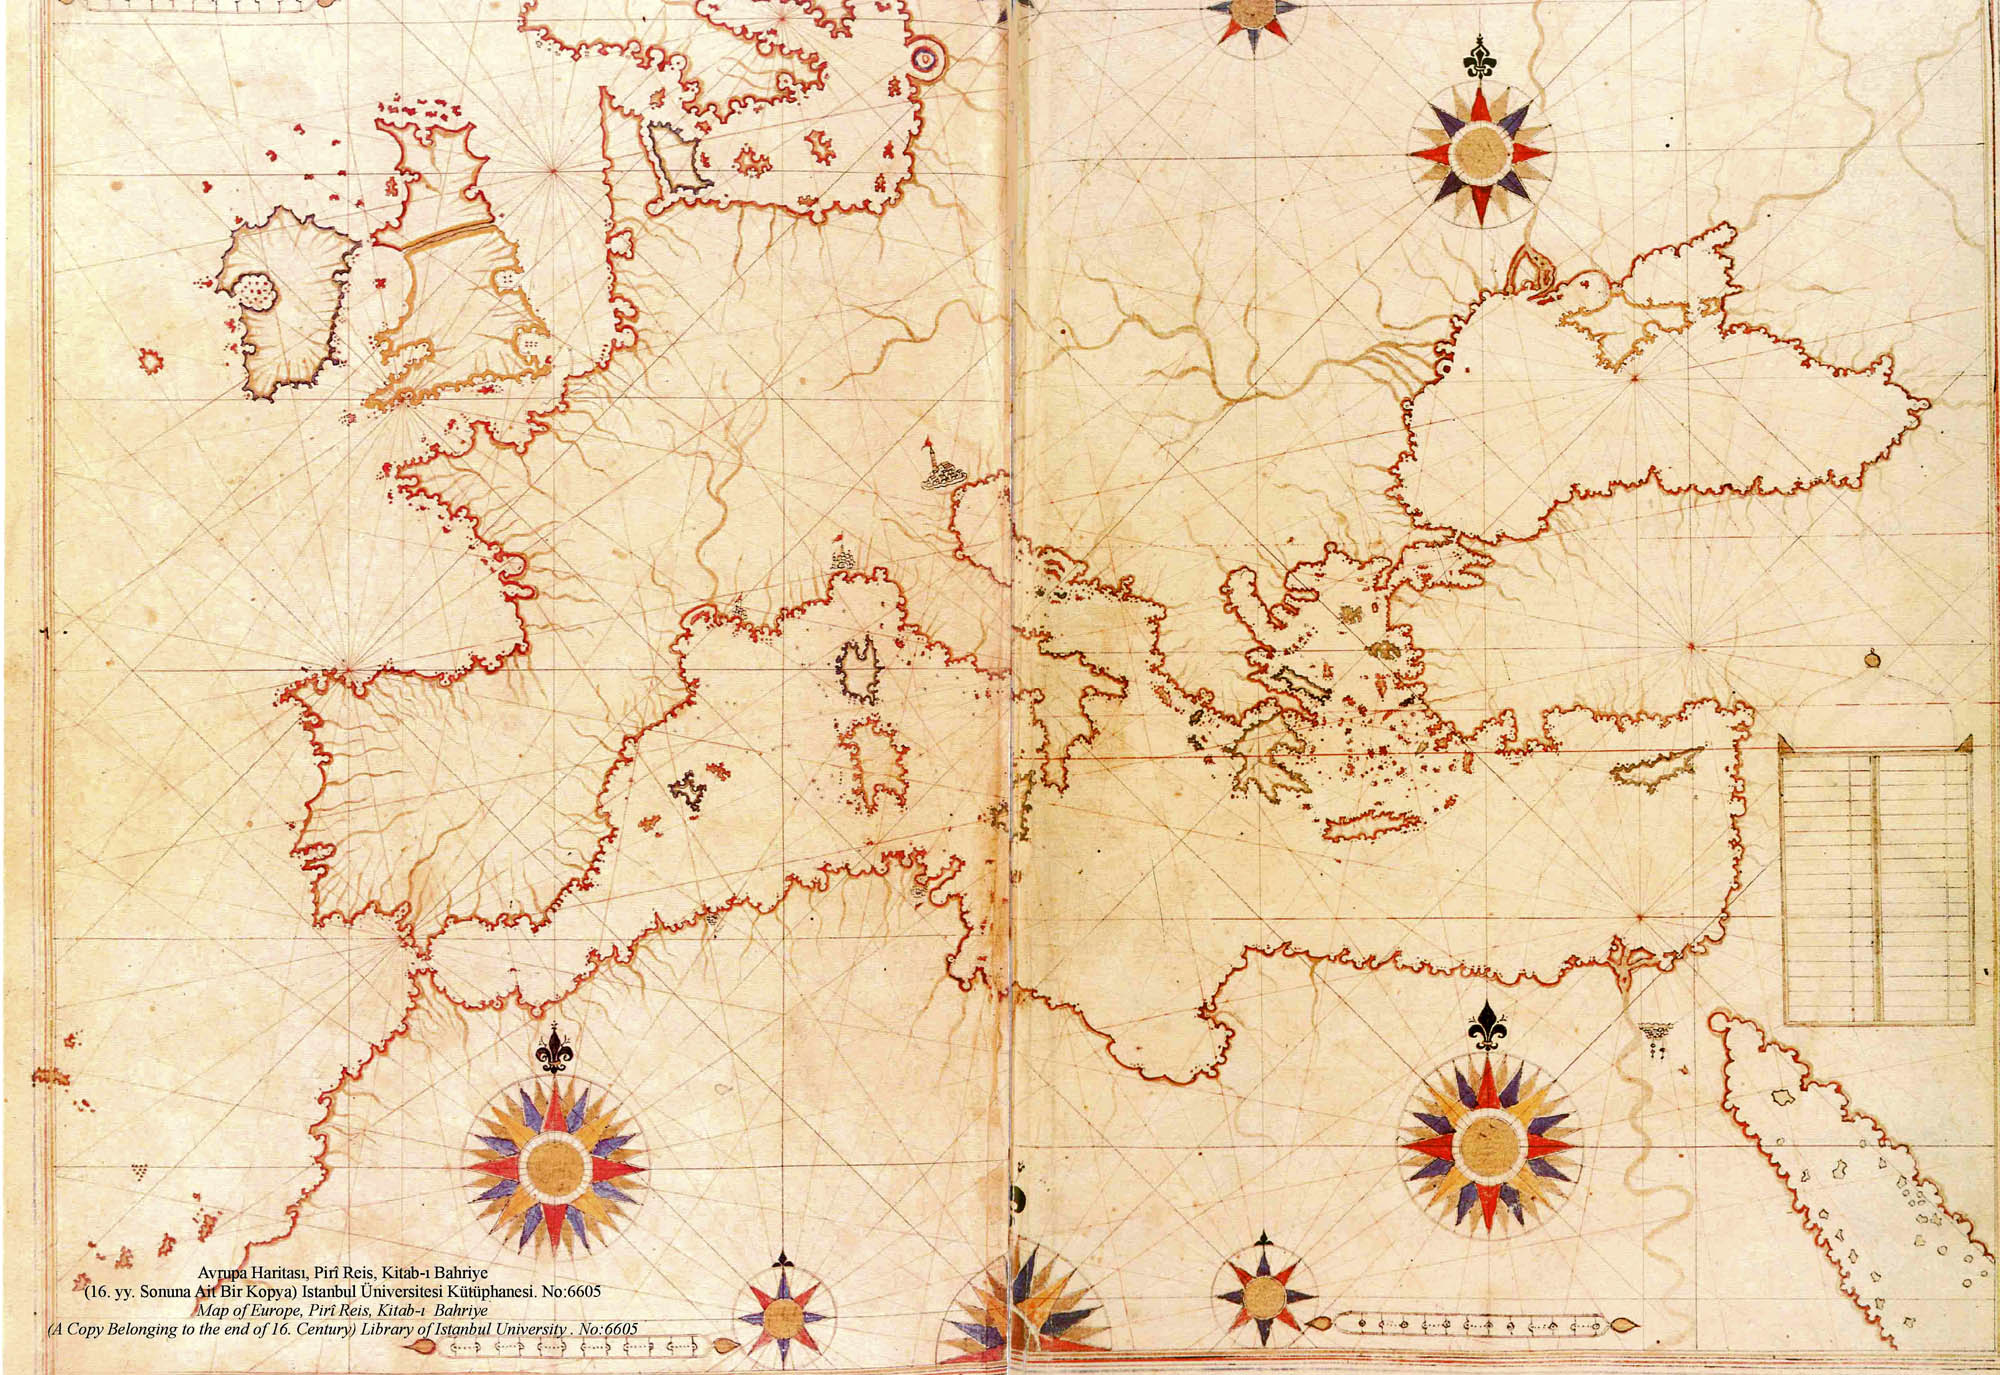 Piri_Reis_map_of_Europe_and_the_Mediterr